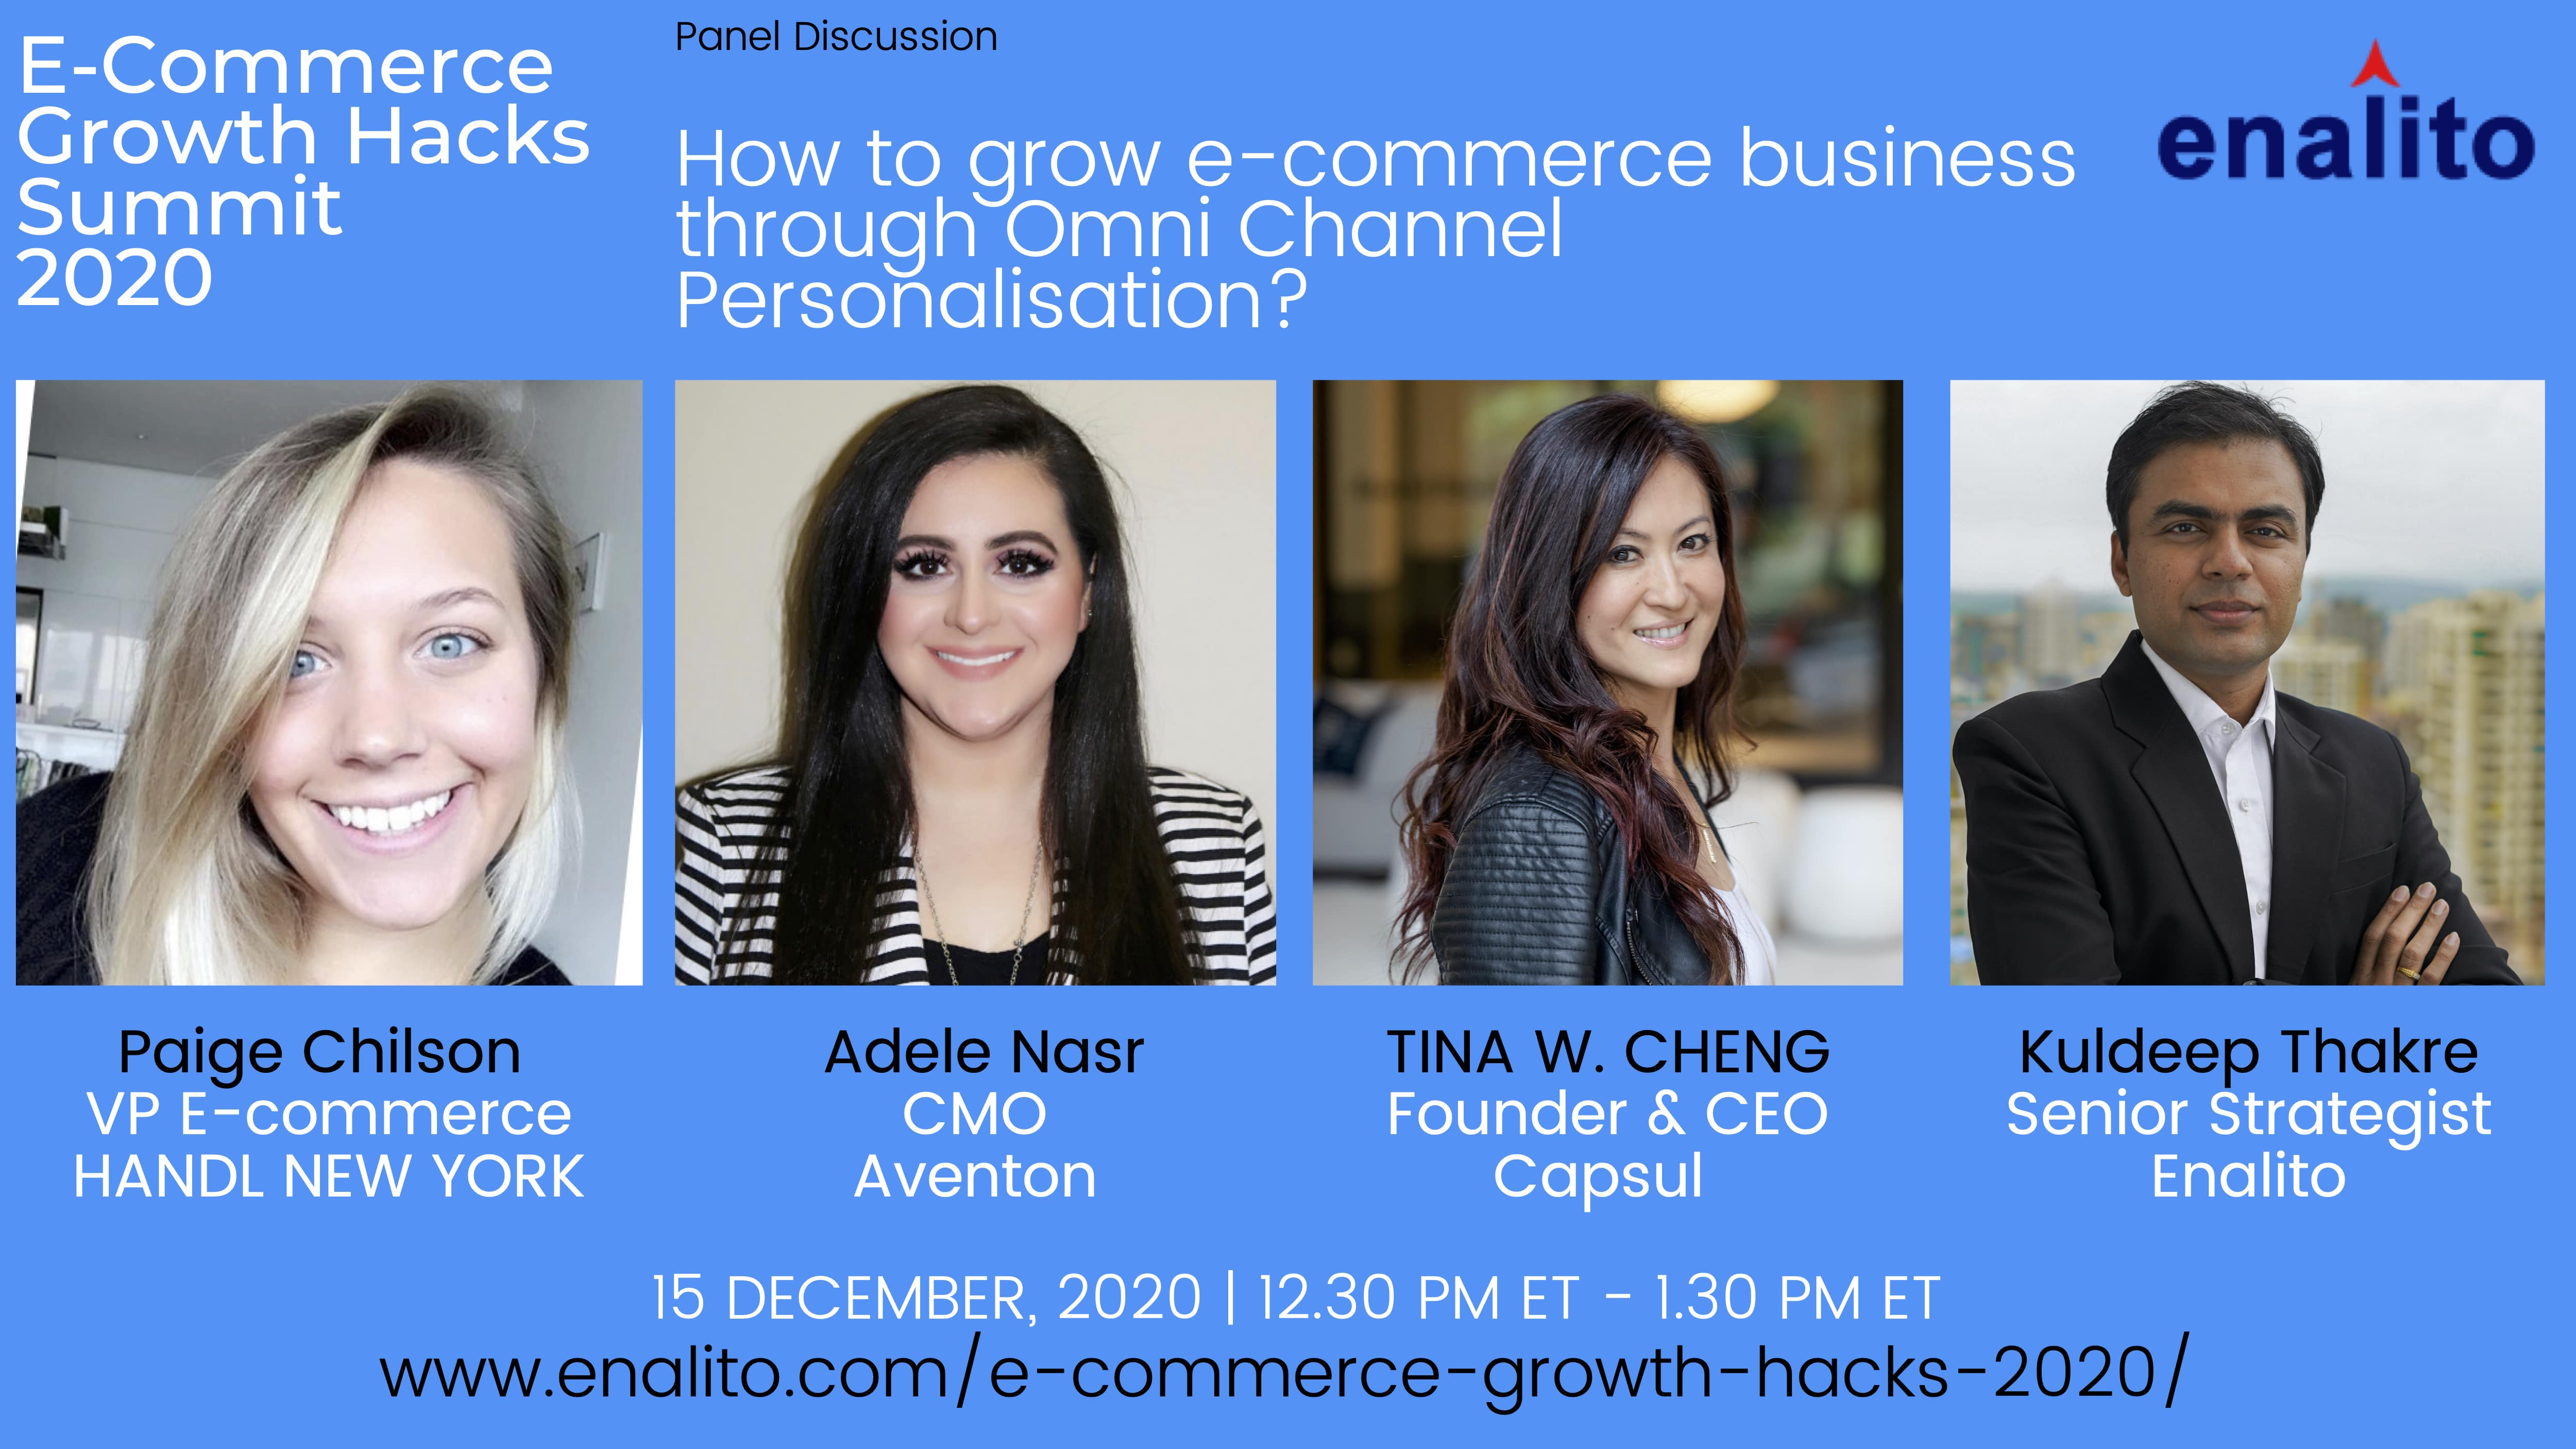 How to grow e-commerce business through Omni Channel Personalisation